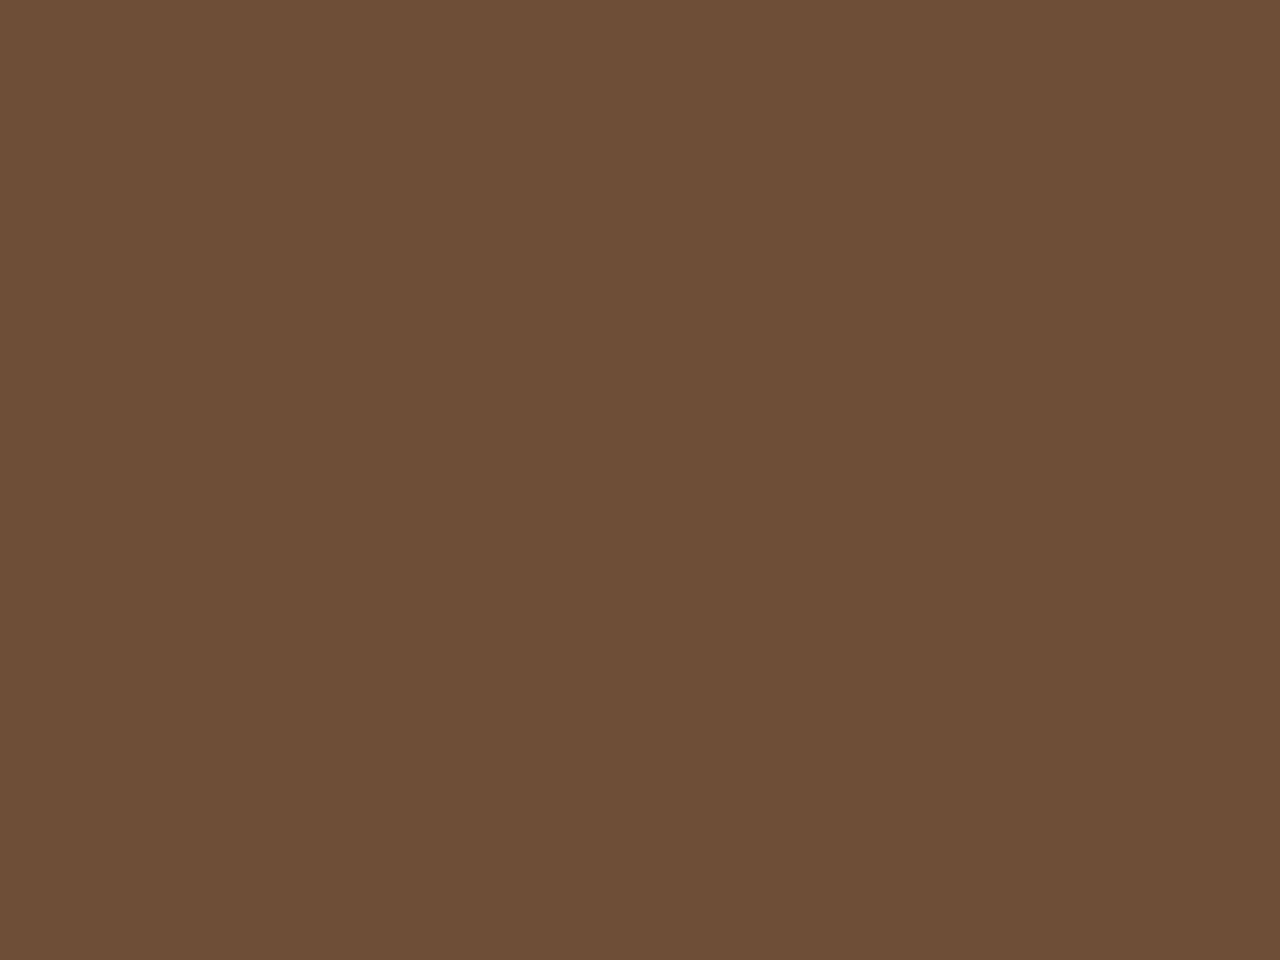 1280x960 Tuscan Brown Solid Color Background